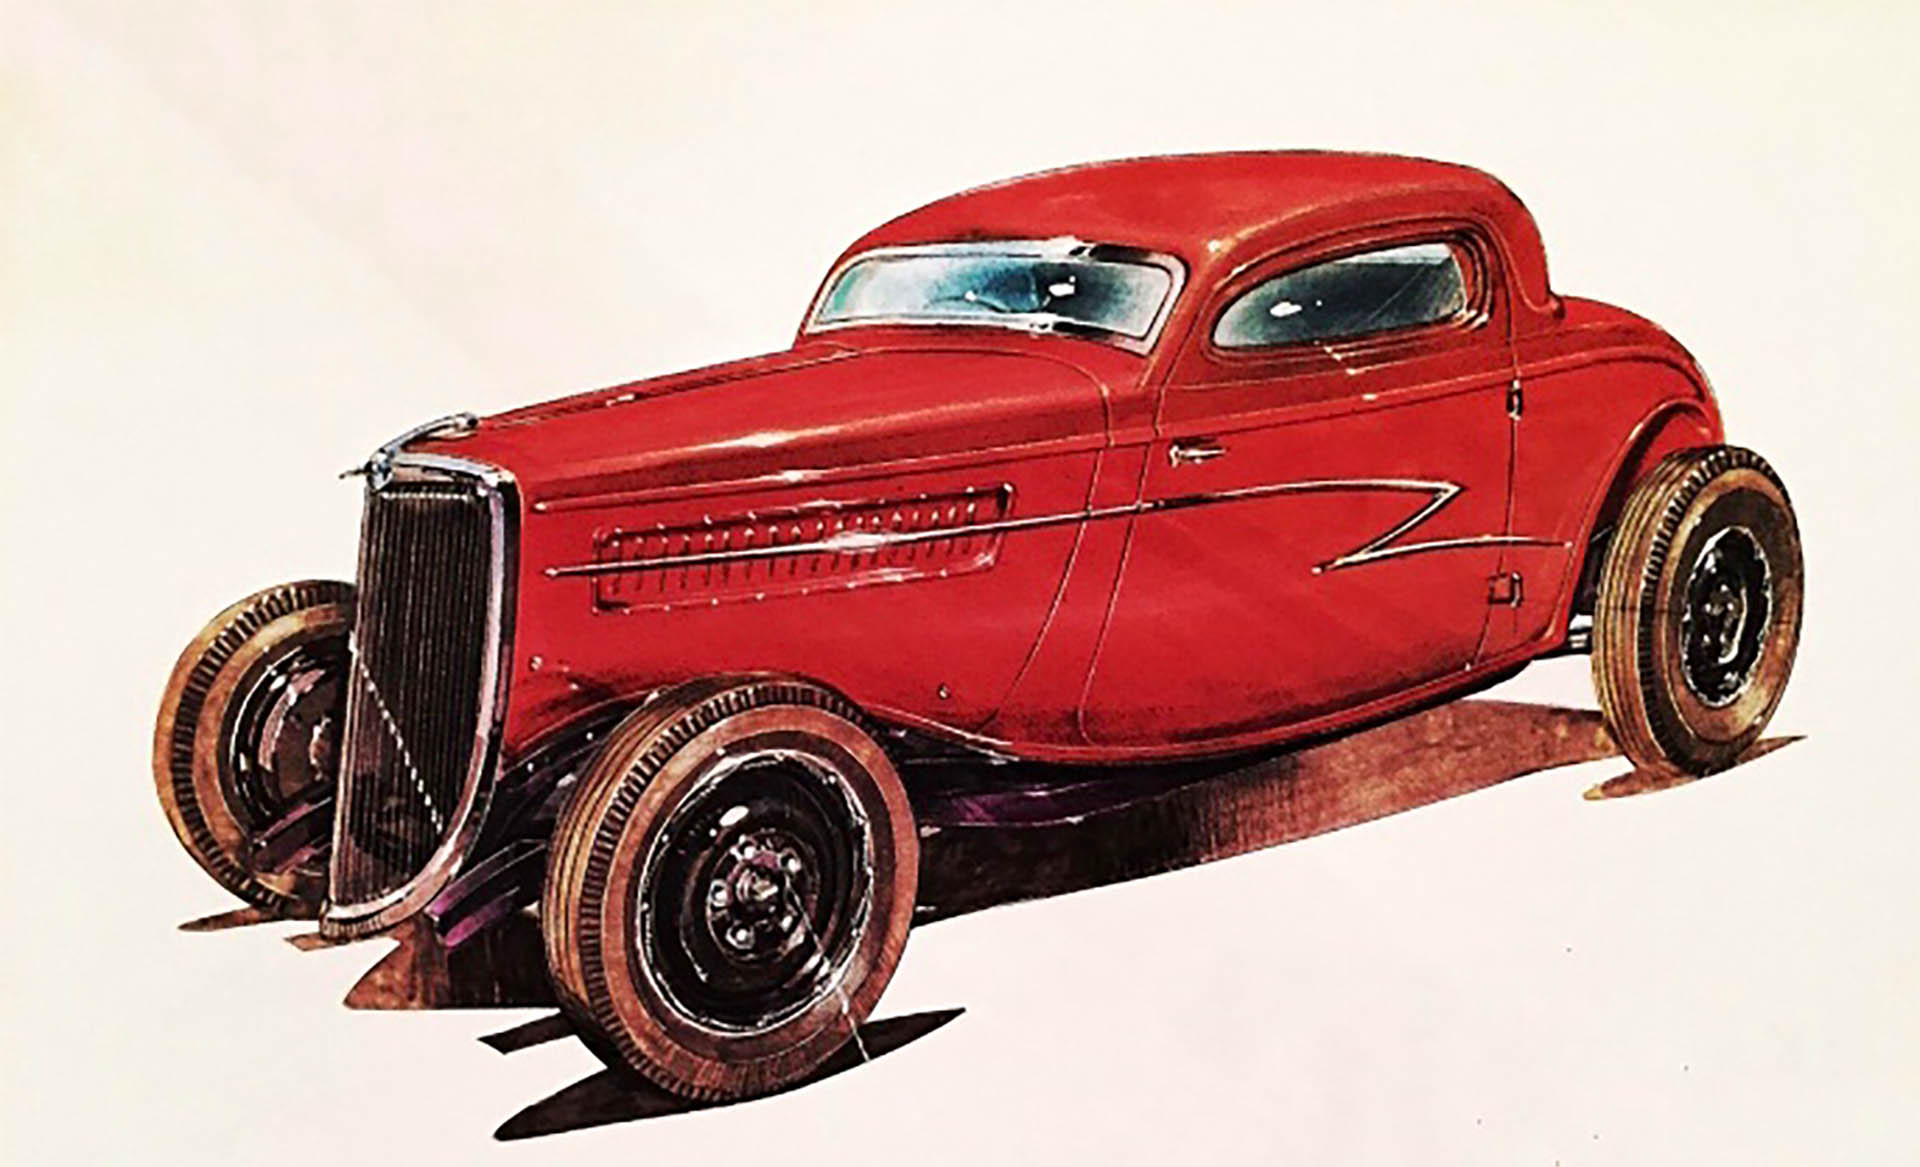 Rendering of the Eliminator inspired Ford coupe by Alberto Hernandez Rendering